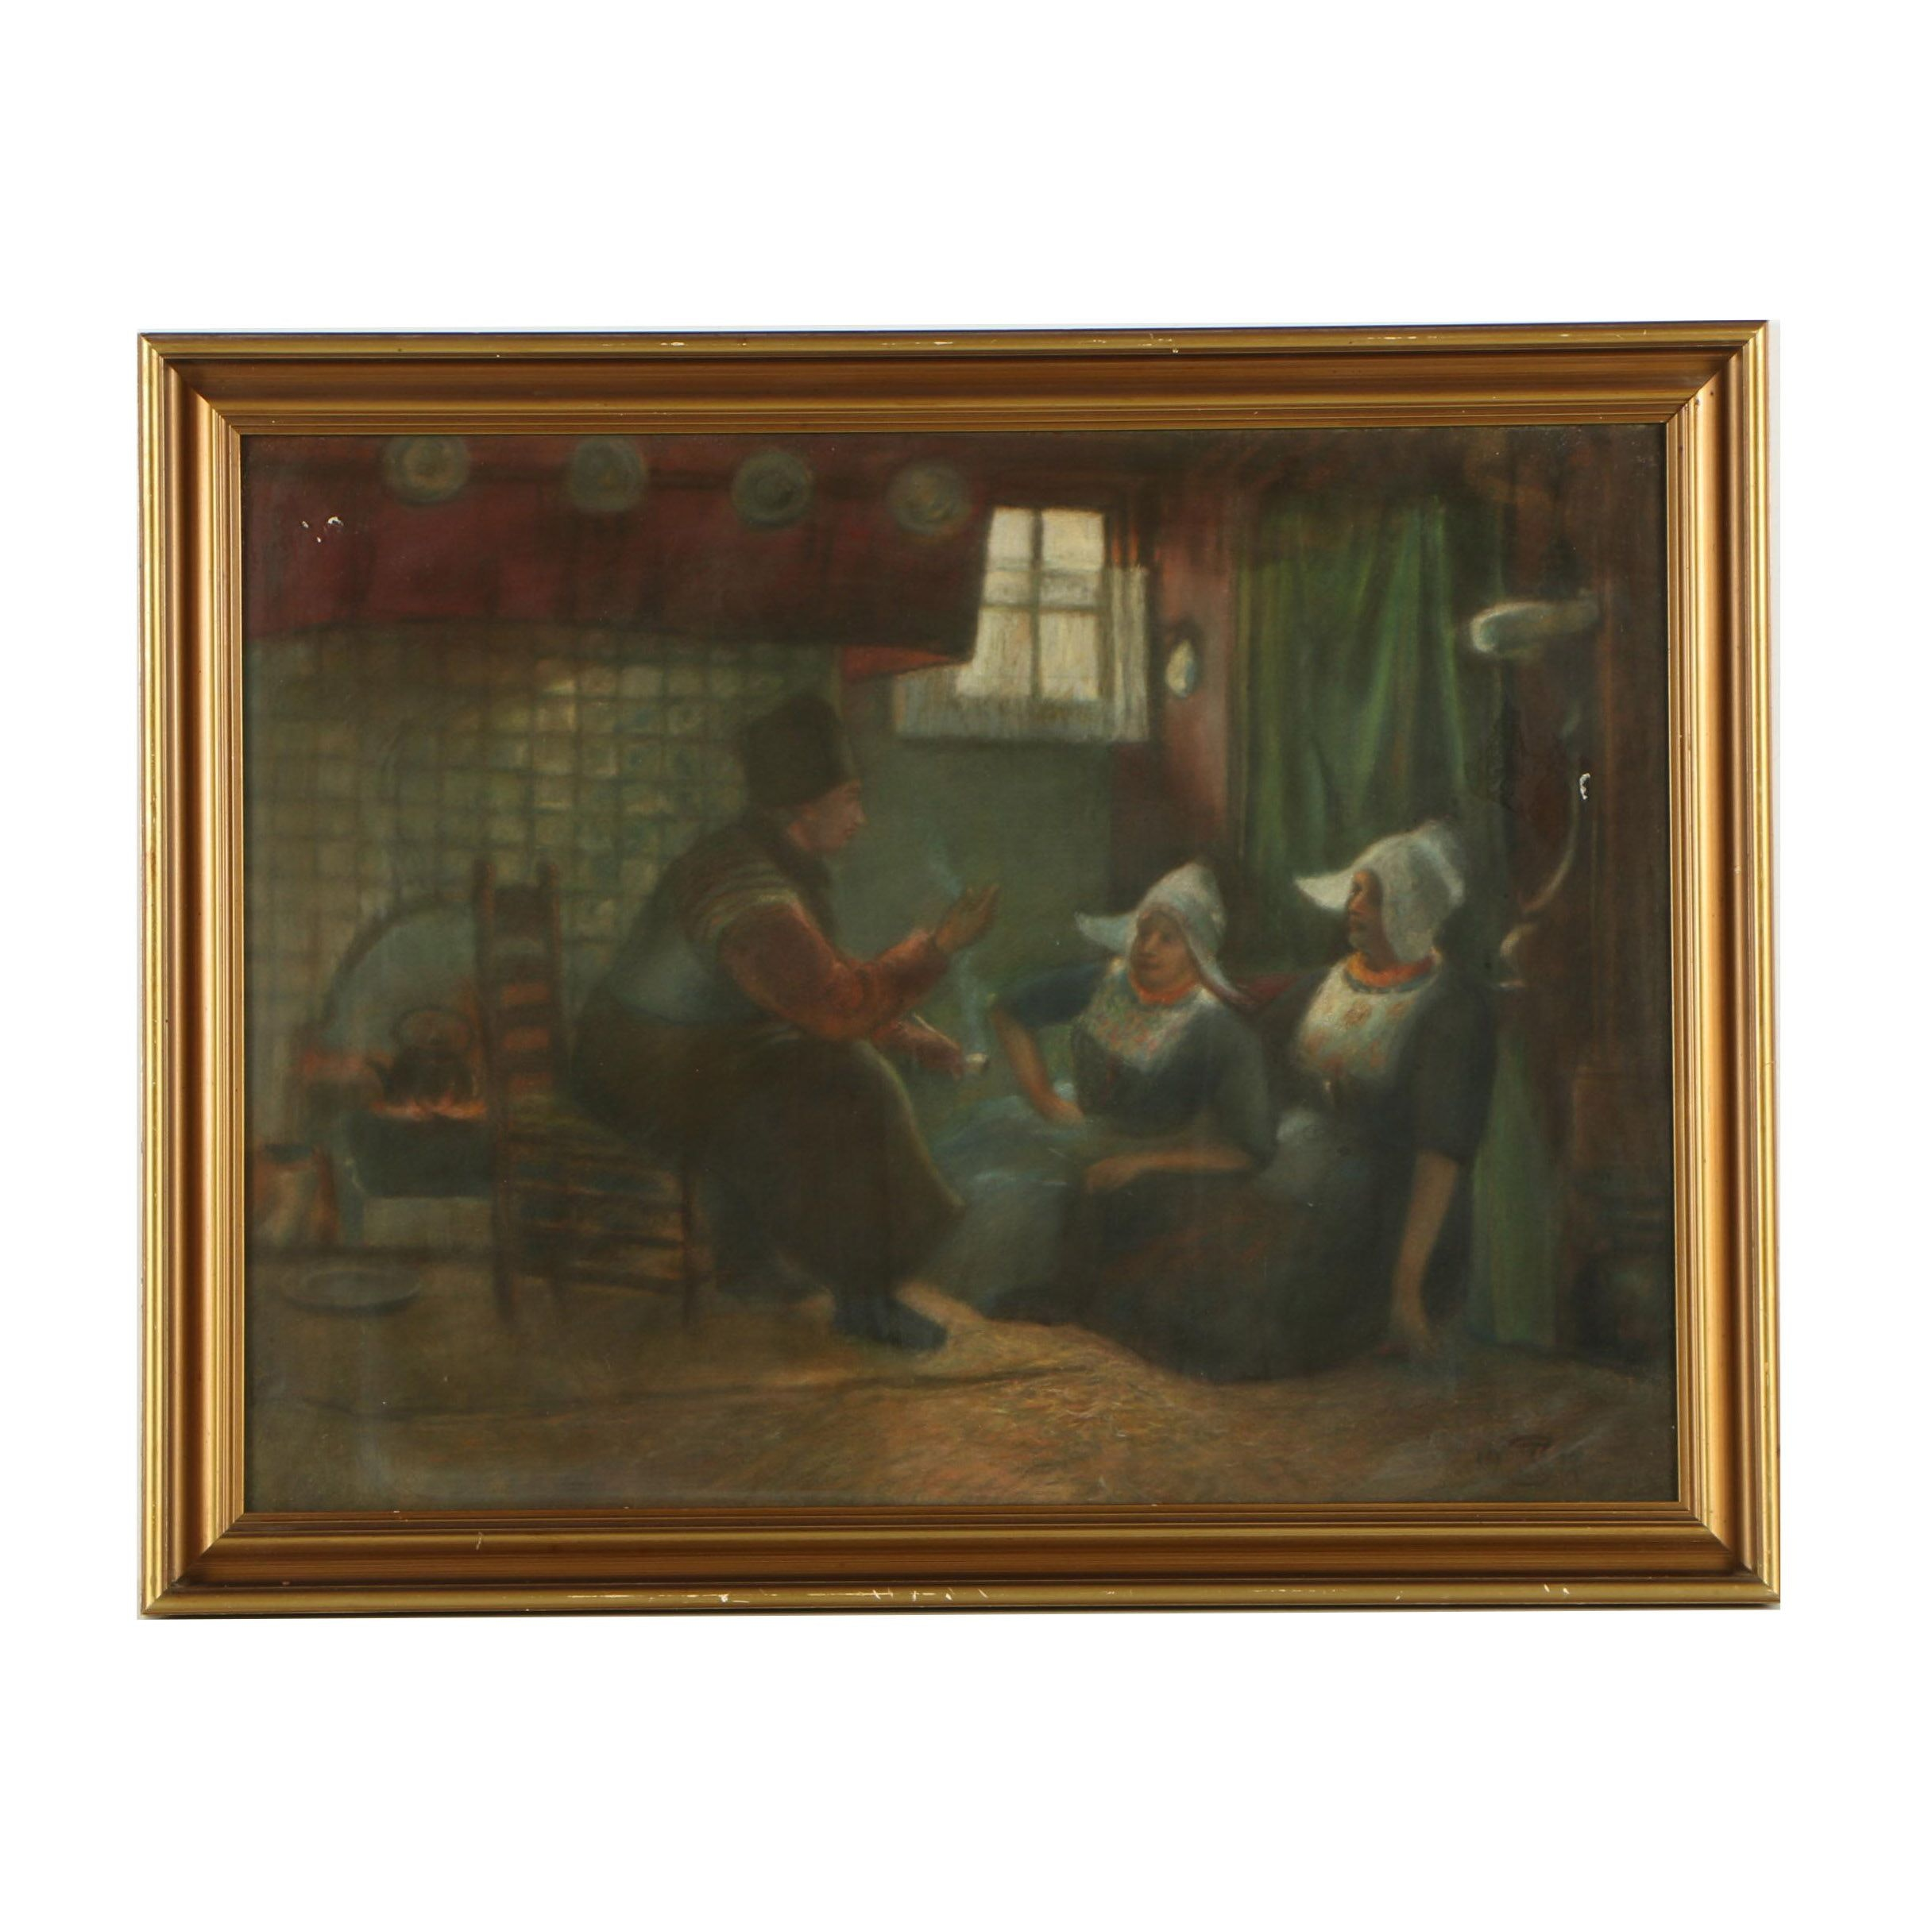 Early 20th Century Pastel Drawing of Interior Scene with Figures Conversing